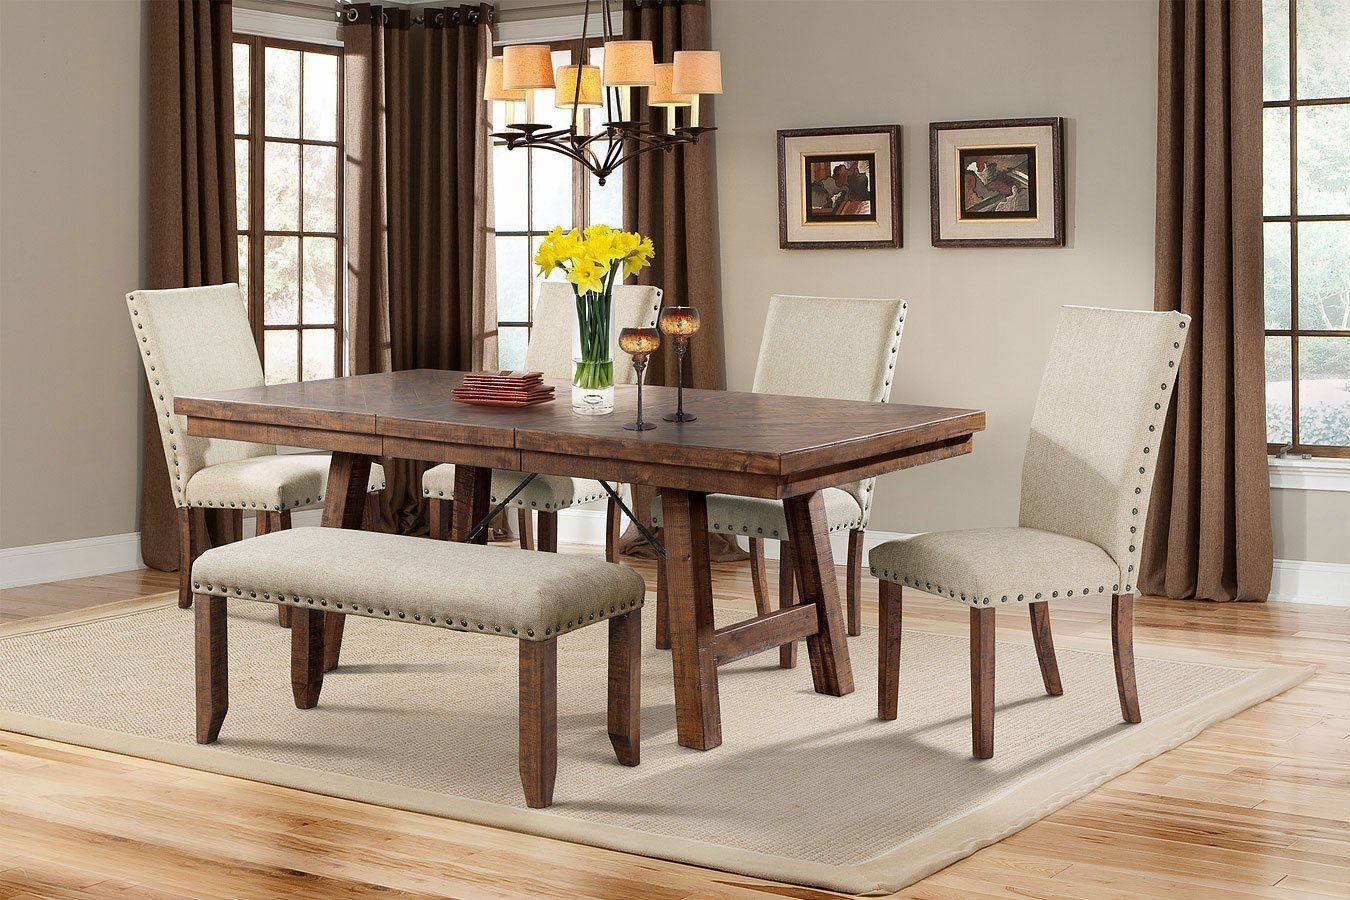 Jax Dining Room Set W/ Upholstered Chairs And Bench ...